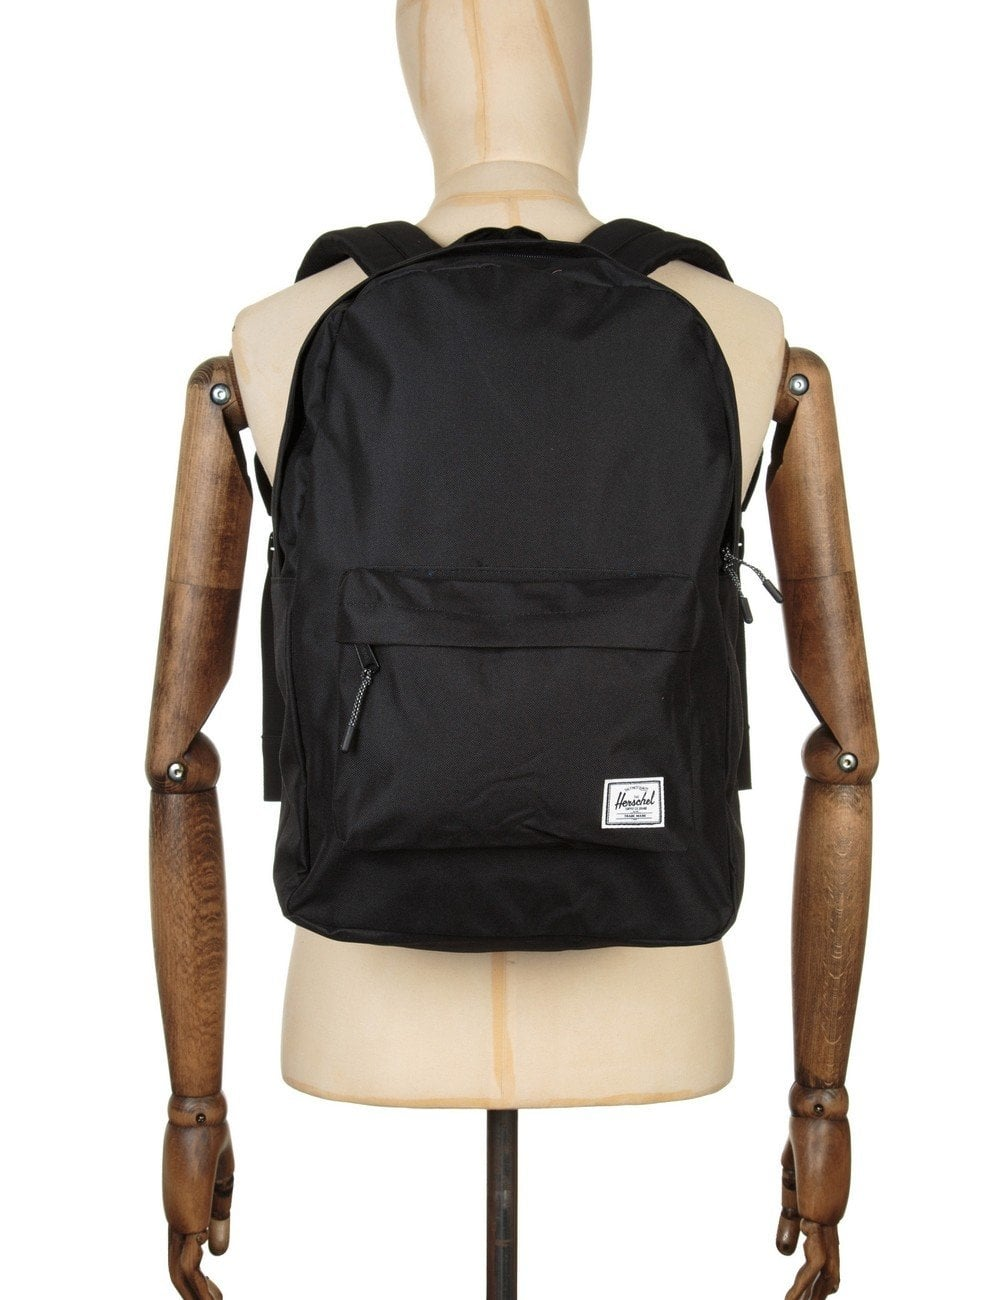 25a4022fd8 Herschel Supply Co Classic Backpack - Black - Accessories from Fat ...